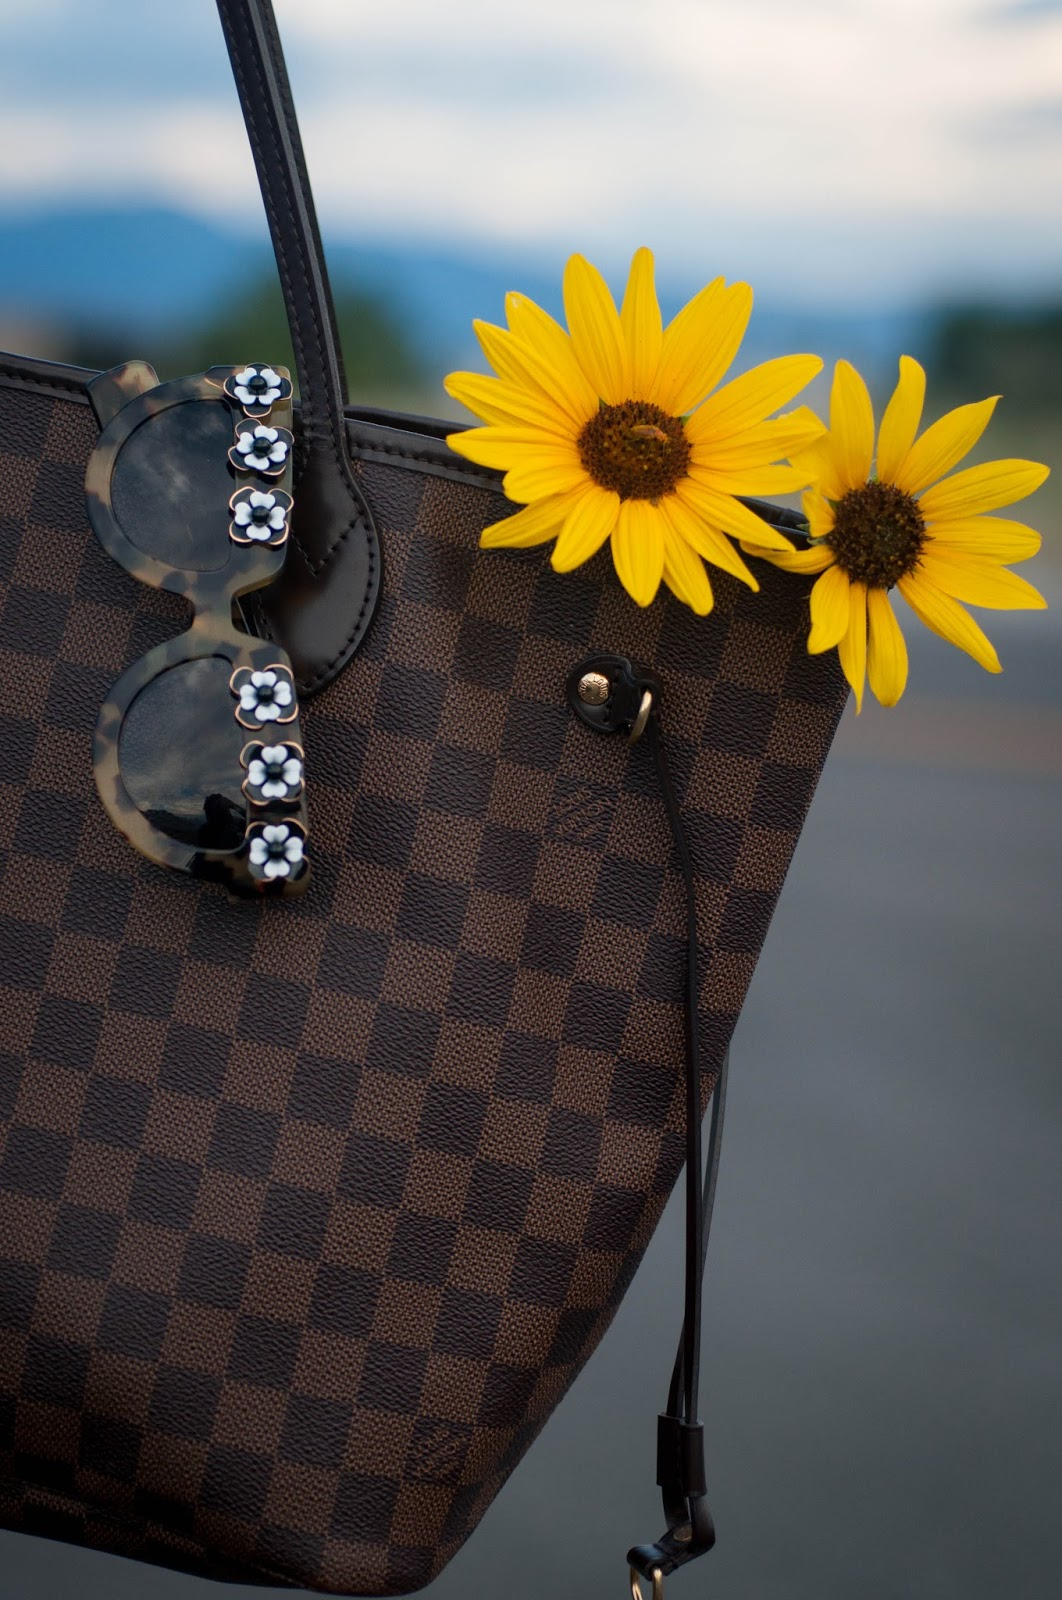 prada, prada sunglasses, prada 2013 flower sunglasses, louis vuitton damier, louis vuitton handbag, wildflowers